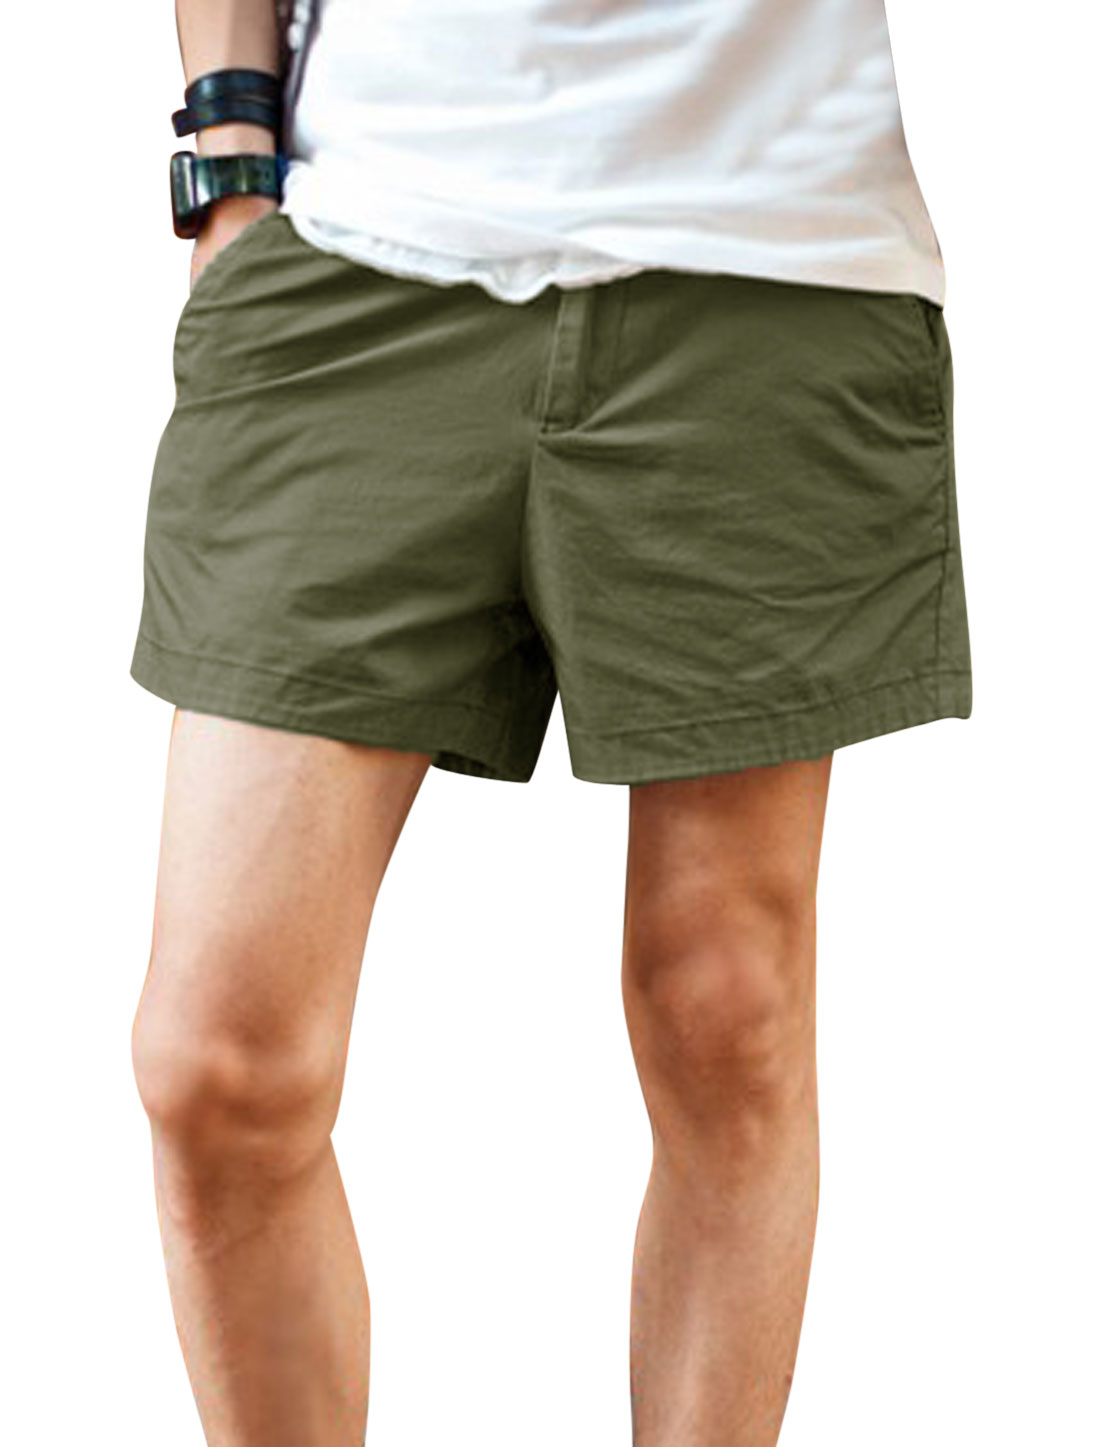 Men Zip Fly Welt Pockets Back Leisure Short Shorts Army Green W30